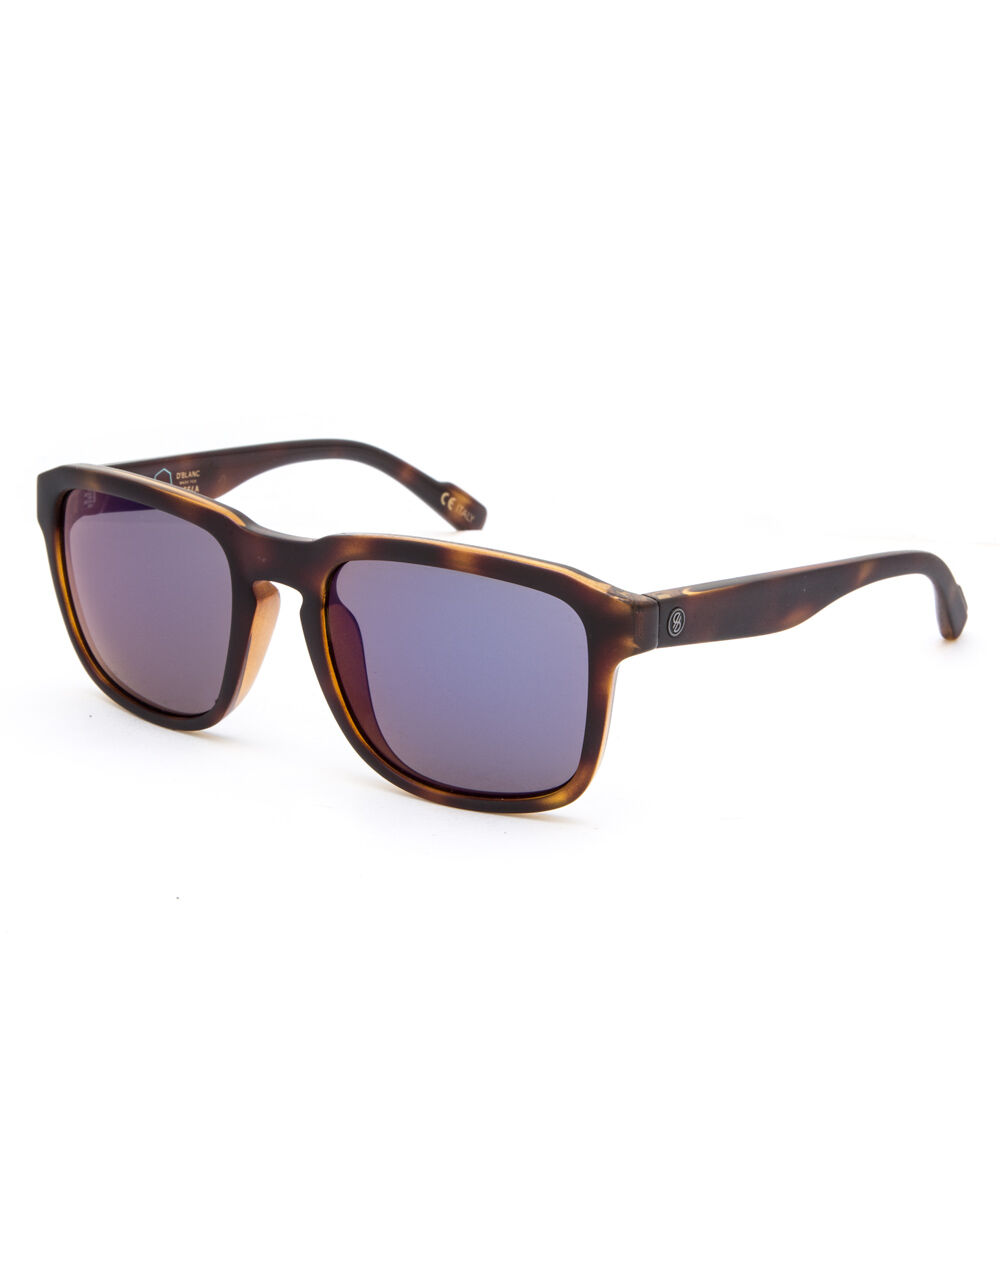 Image of D'BLANC AFTER HOURS VISSLA FLAT GLOSS TORT & COBALT SUNGLASSES